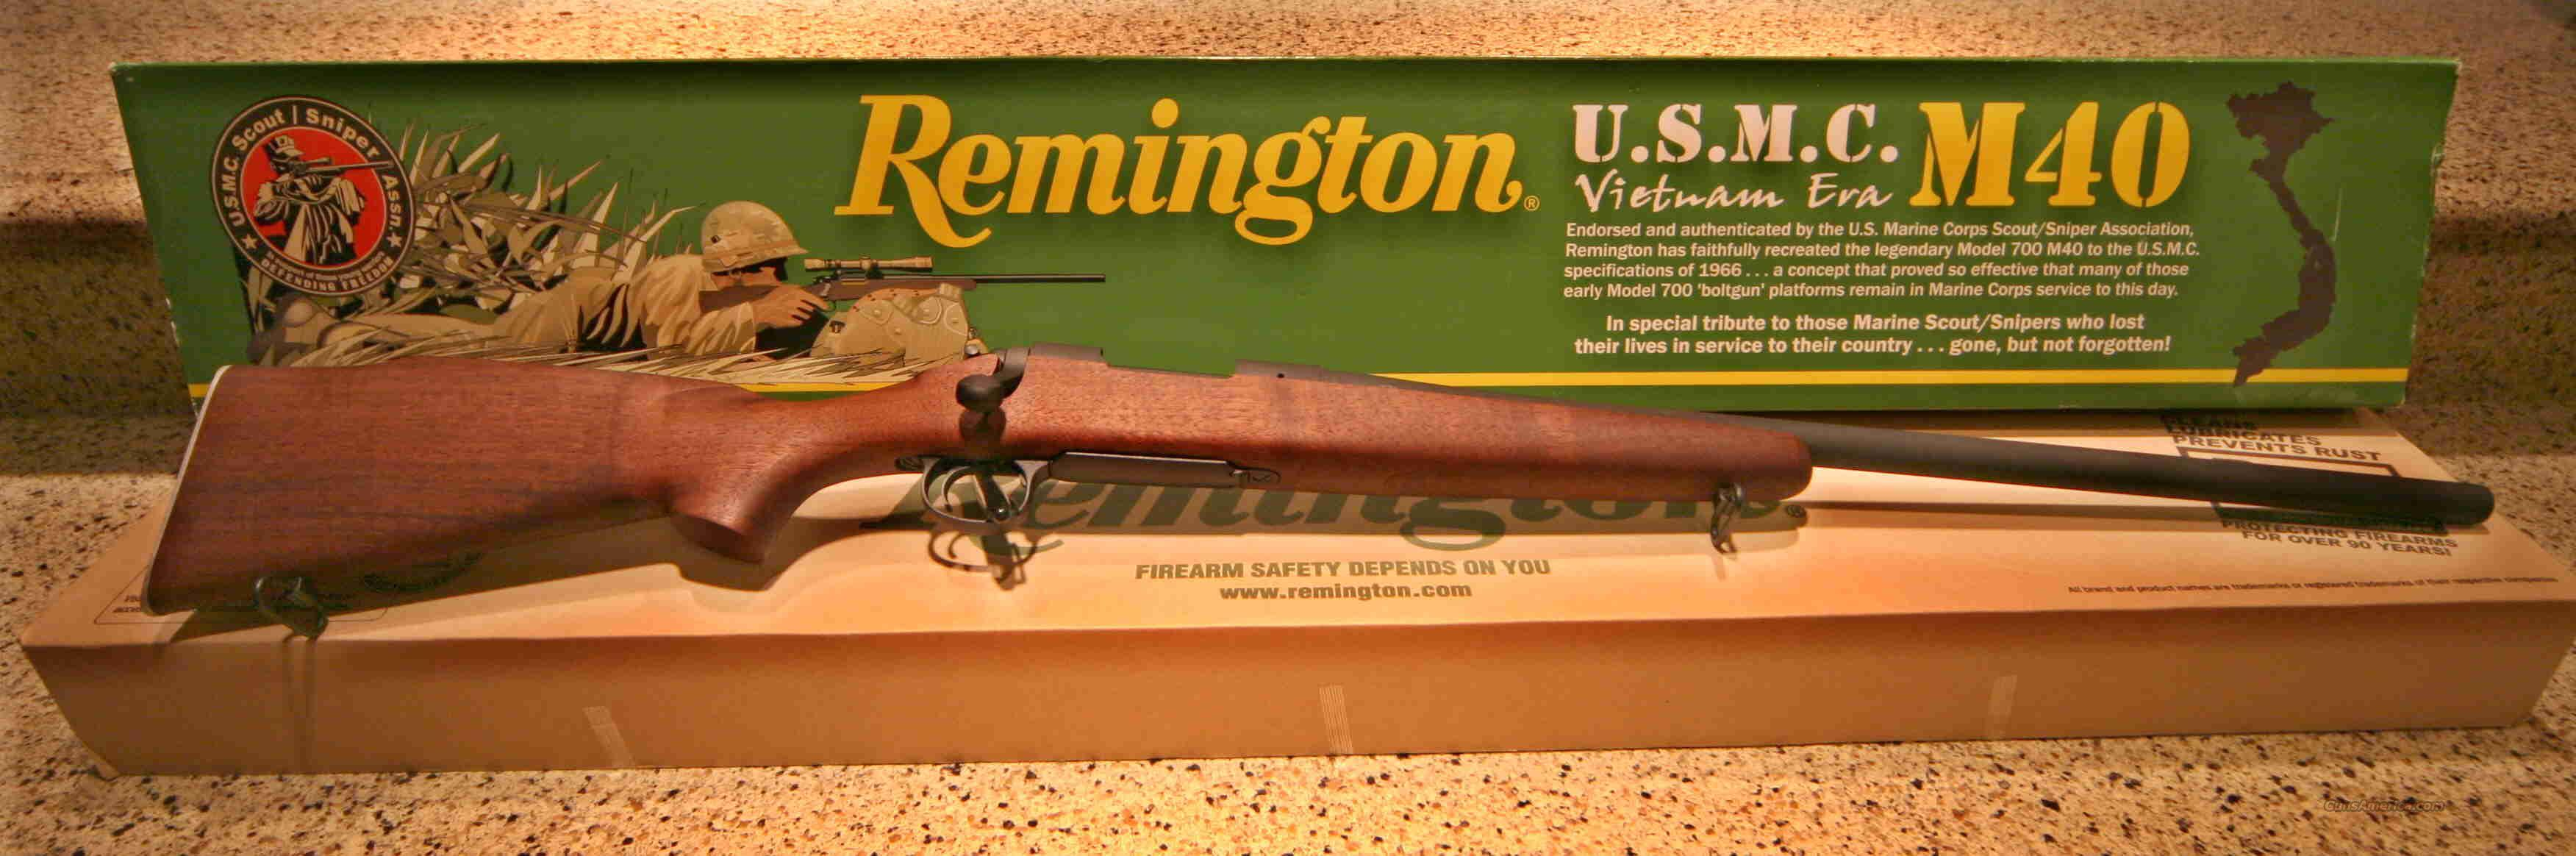 Remington 700 USMC M40 (New In Box Unfired)   Guns > Rifles > Remington Replica Rifles